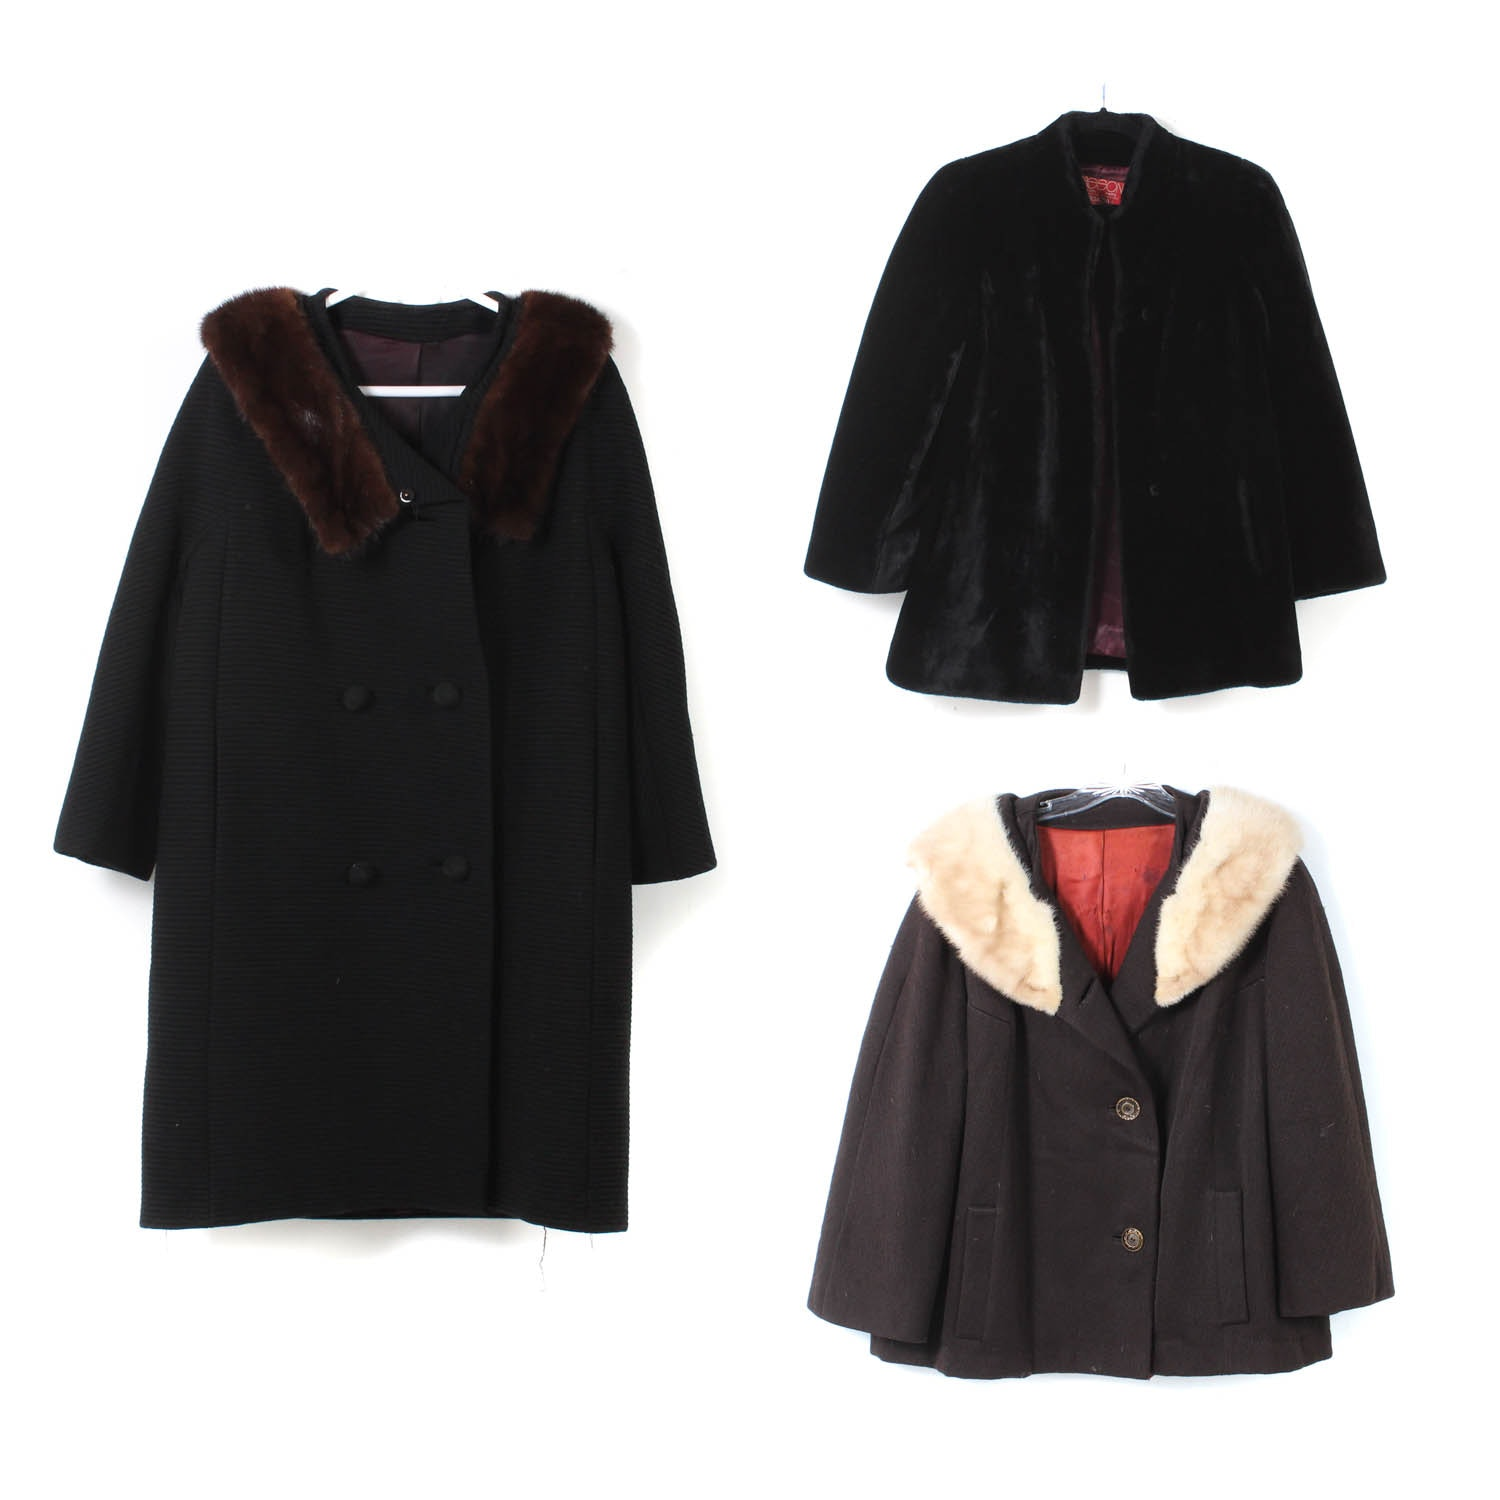 Women's Vintage Outerwear Featuring Mink Fur Collars